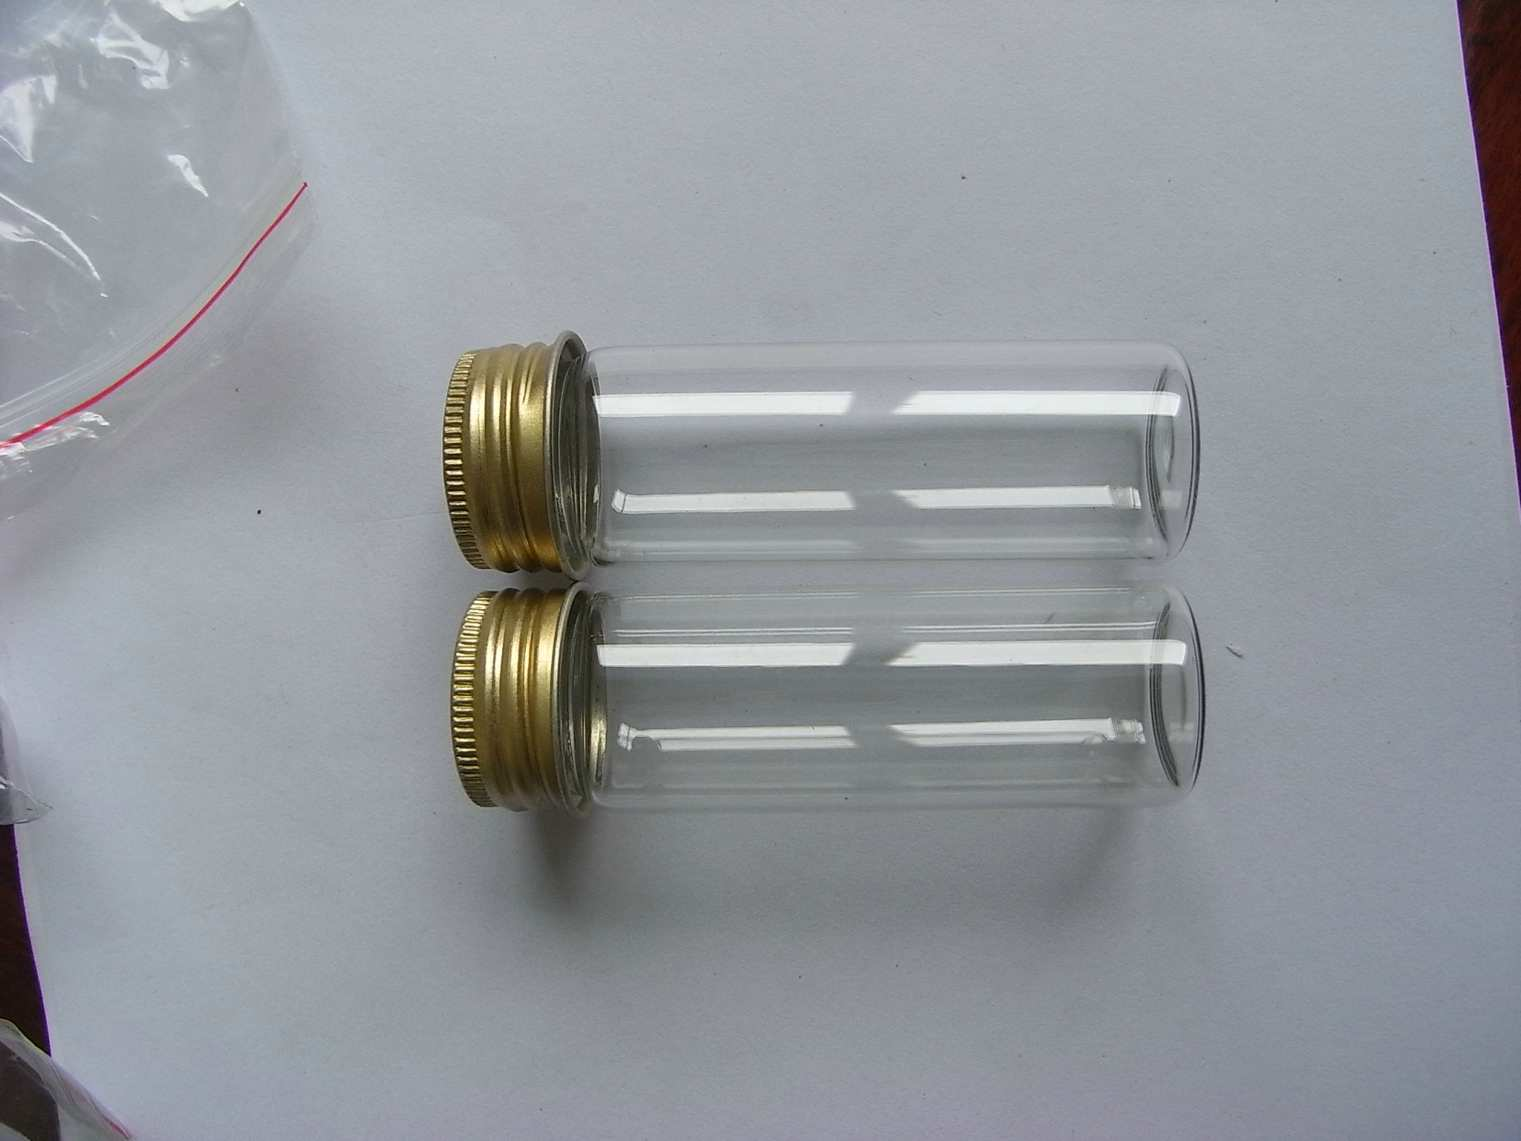 China glass test tube sw t07 china test tube glass for Glass test tubes for crafts